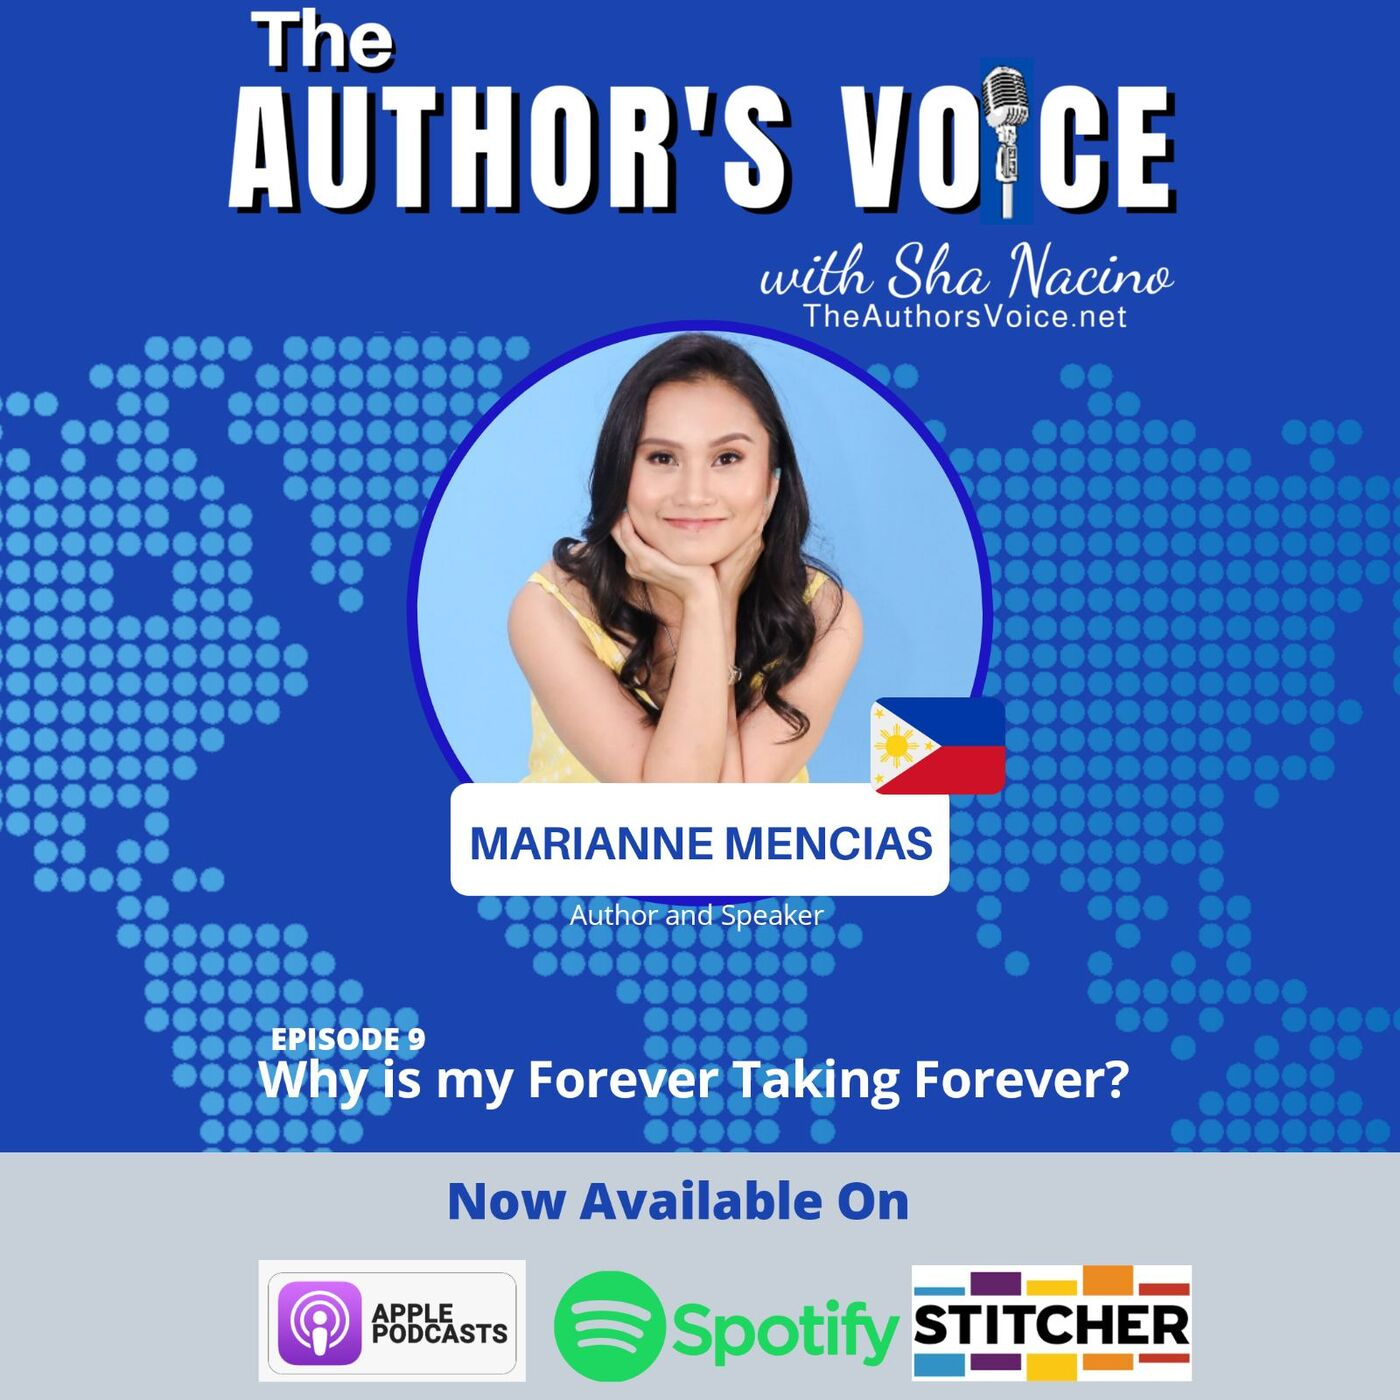 TAV 009 : Why is my Forever Taking Forever with Marianne Mencias